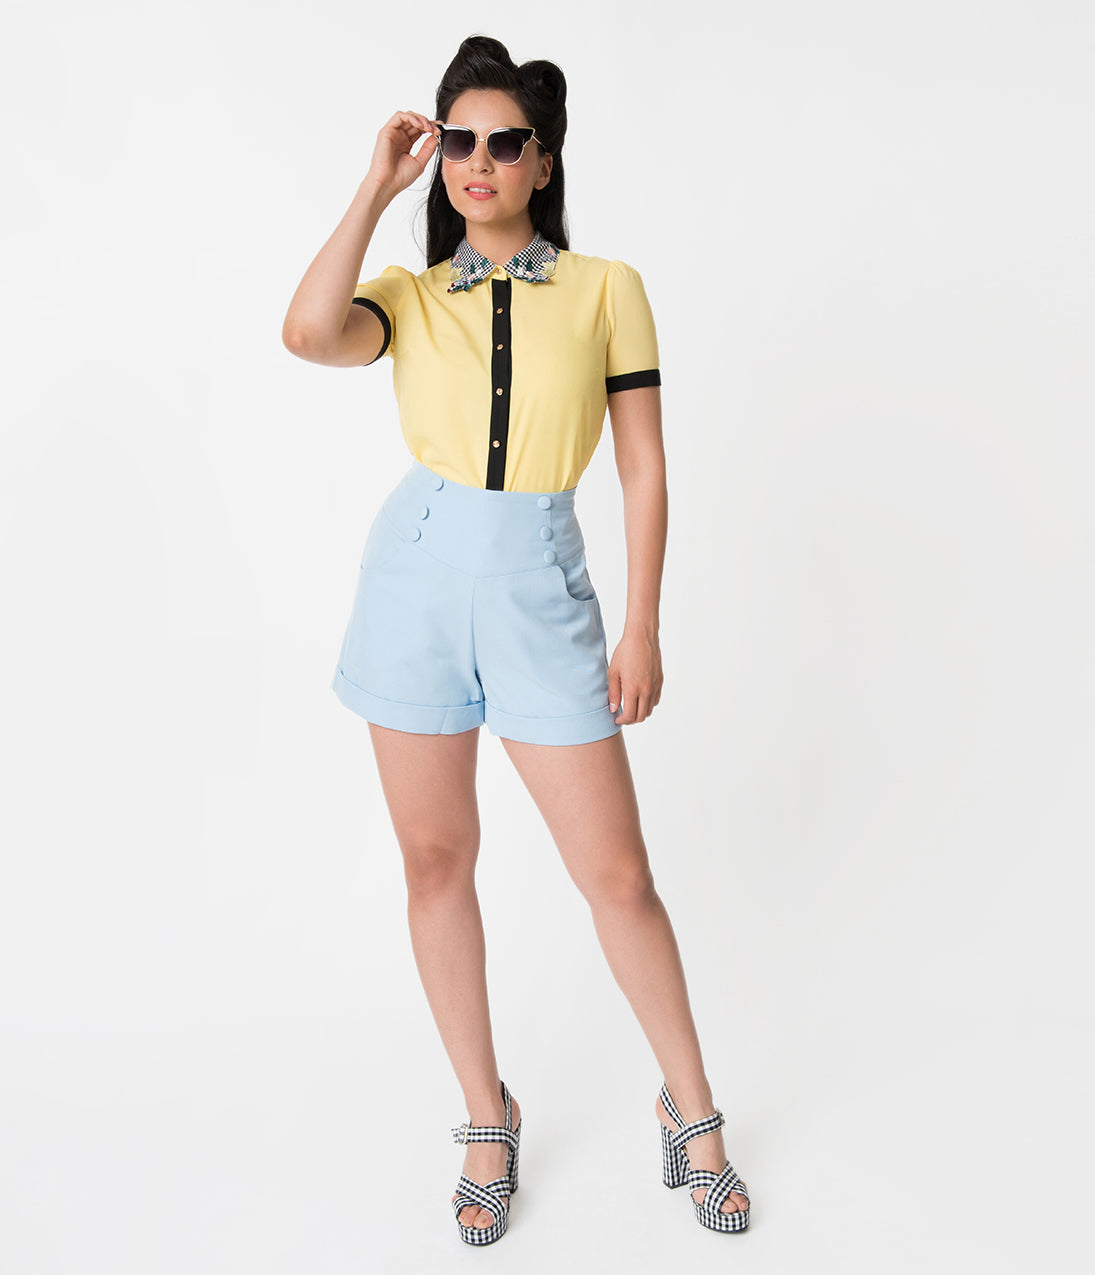 Vintage High Waisted Shorts | 1950s Pinup, Rockabilly Shorts Banned Vintage Style Baby Blue Button Detailed High Waisted Shorts $58.00 AT vintagedancer.com